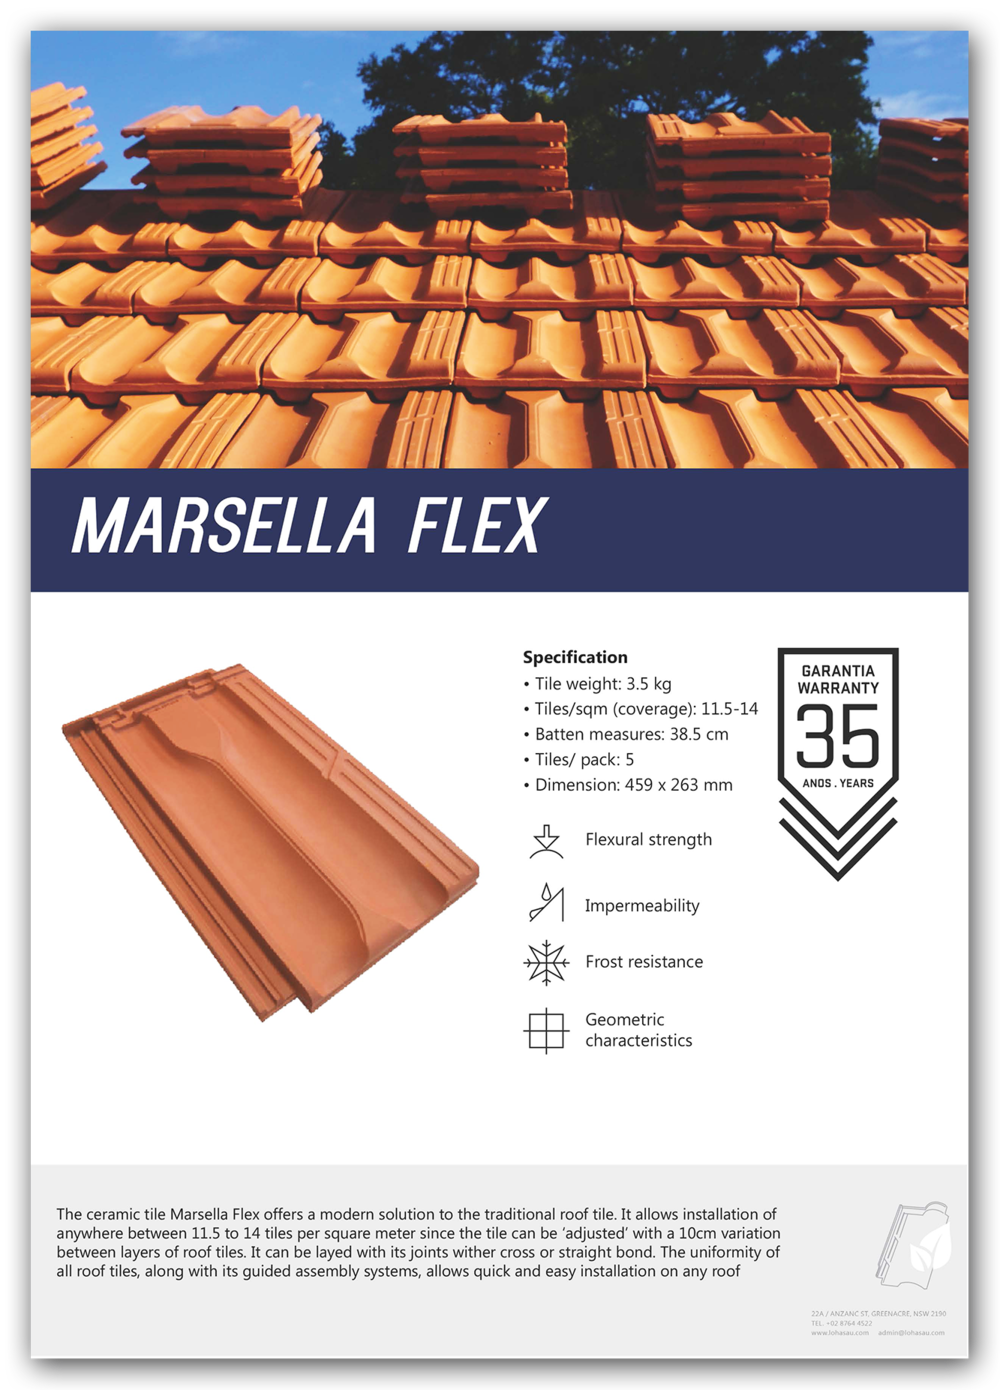 LOHAS_MARSELLA_FLEX_FLYER_2016